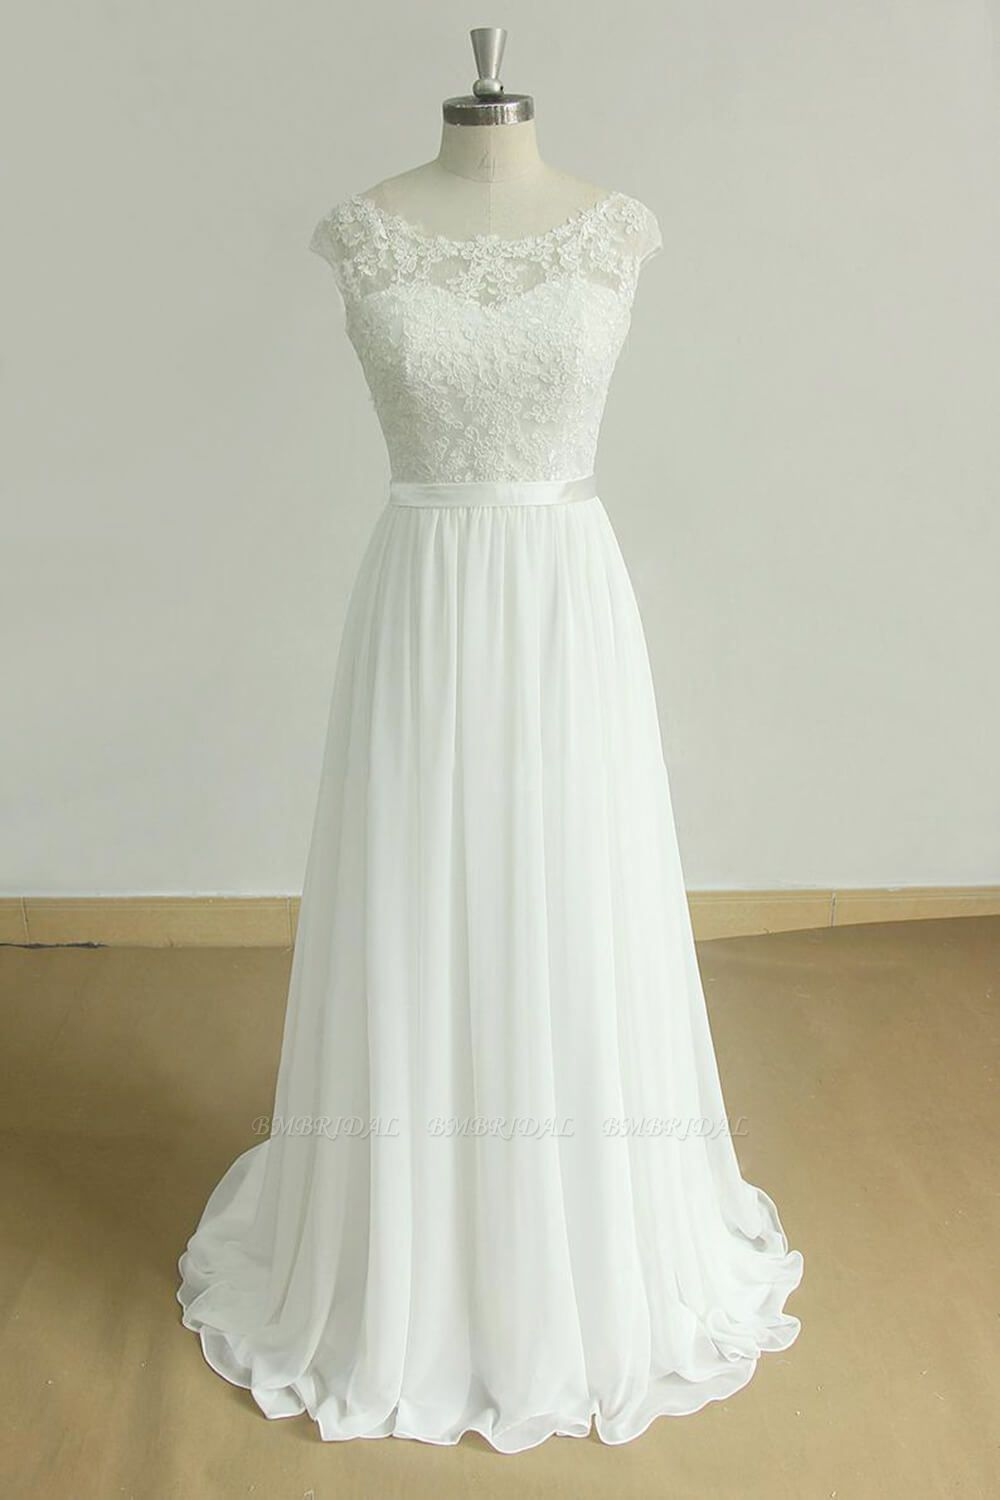 BMbridal Stylish White Chiffon Lace Wedding Dresses Jewel Sleeveless Bridal Gowns On Sale